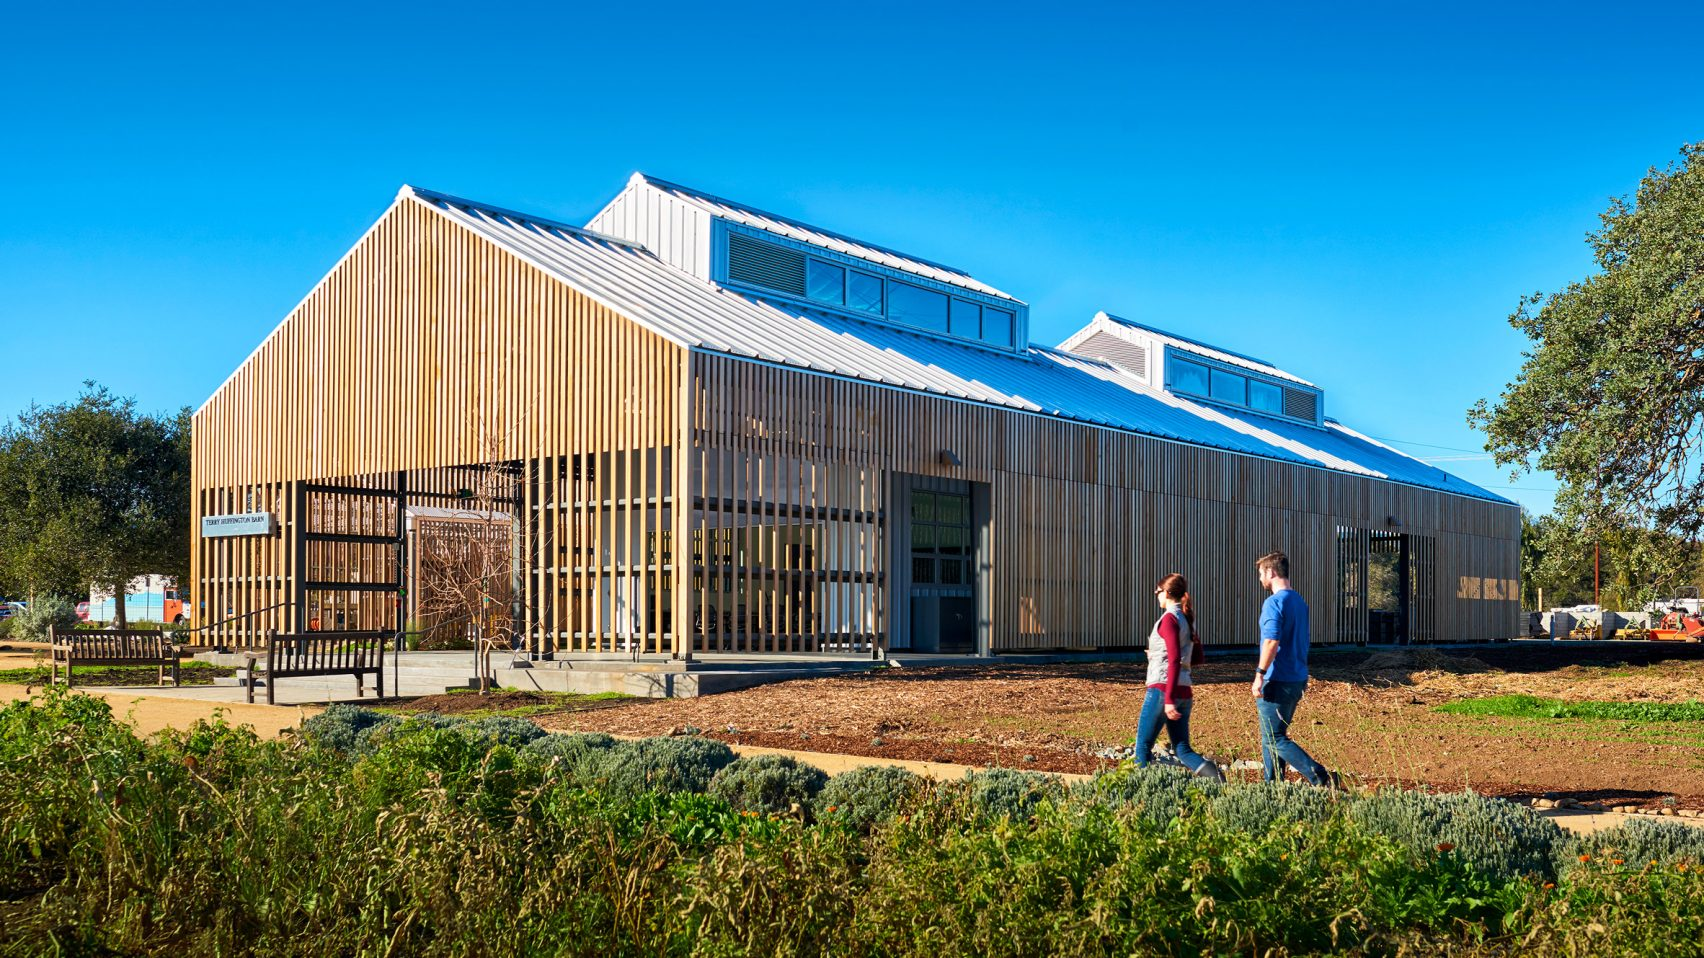 Stanford University educational farm in Silicon Valley, California by CAW Architects